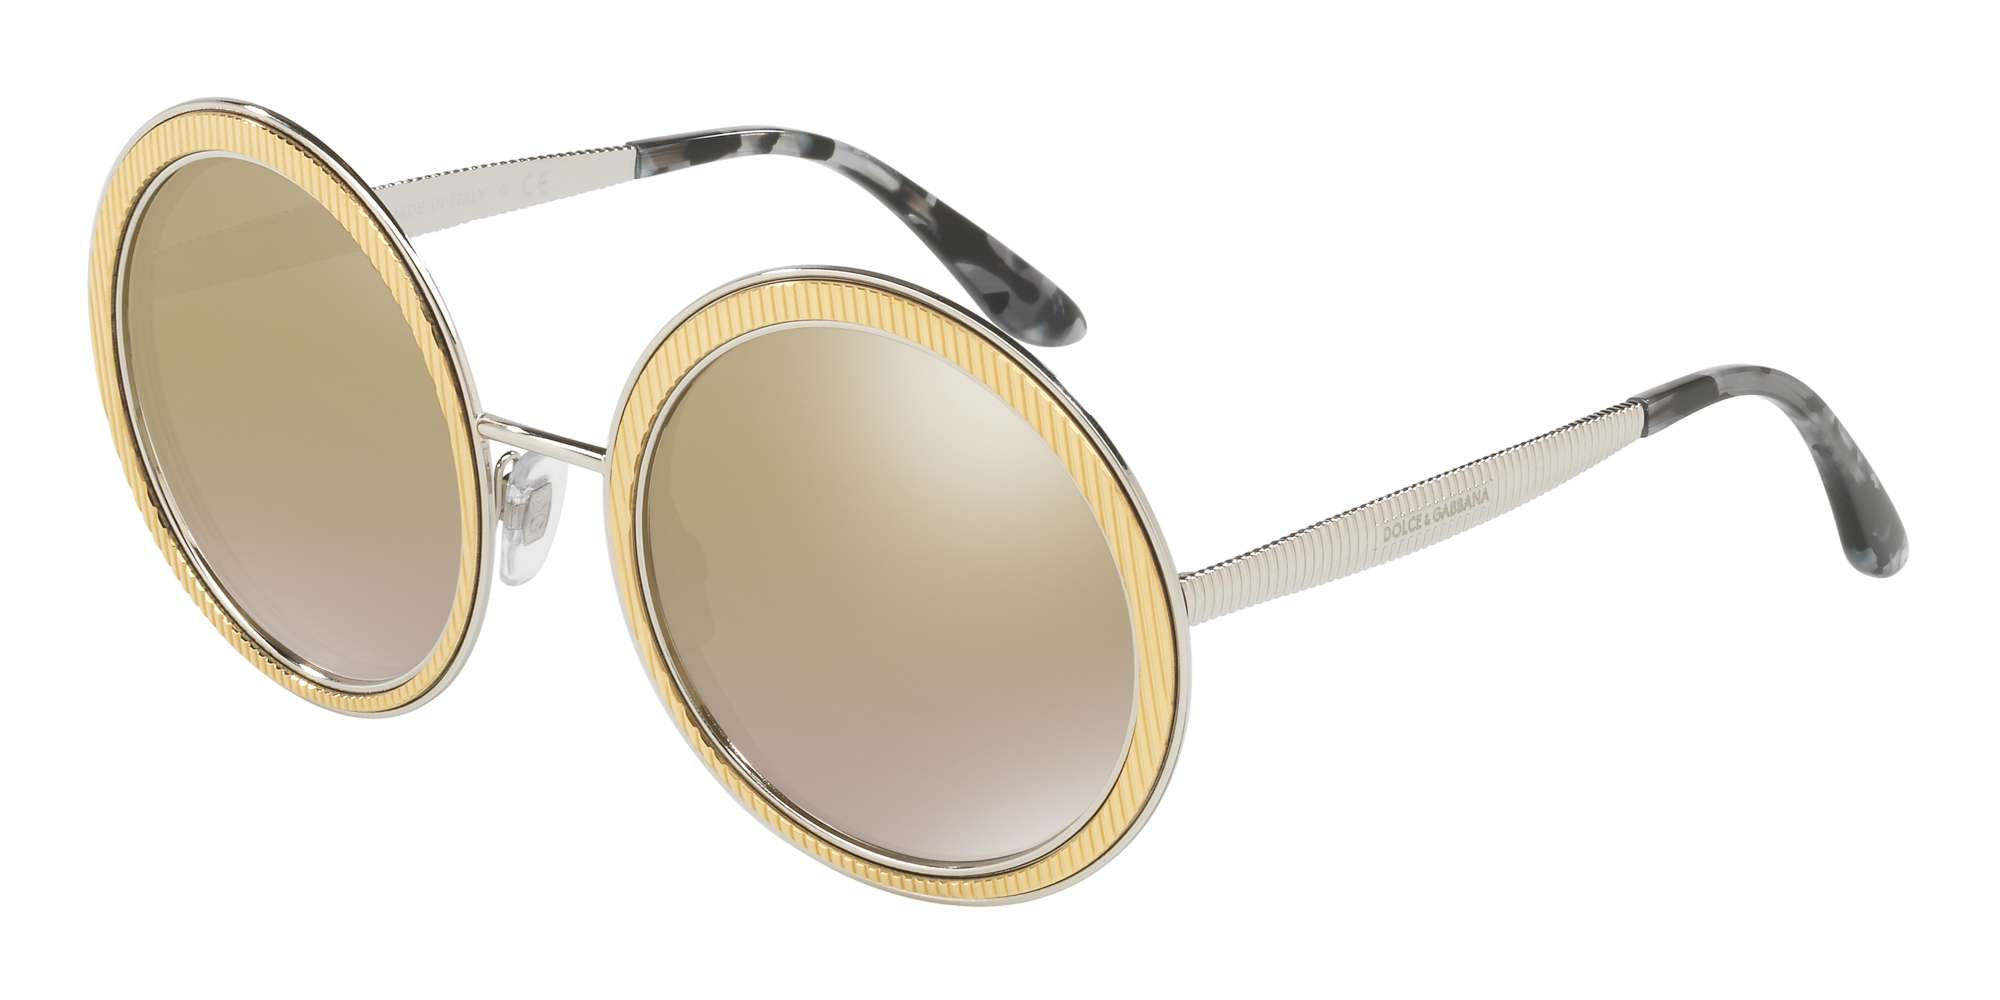 GOLD / LIGHT BROWN MIRROR GOLD lenses